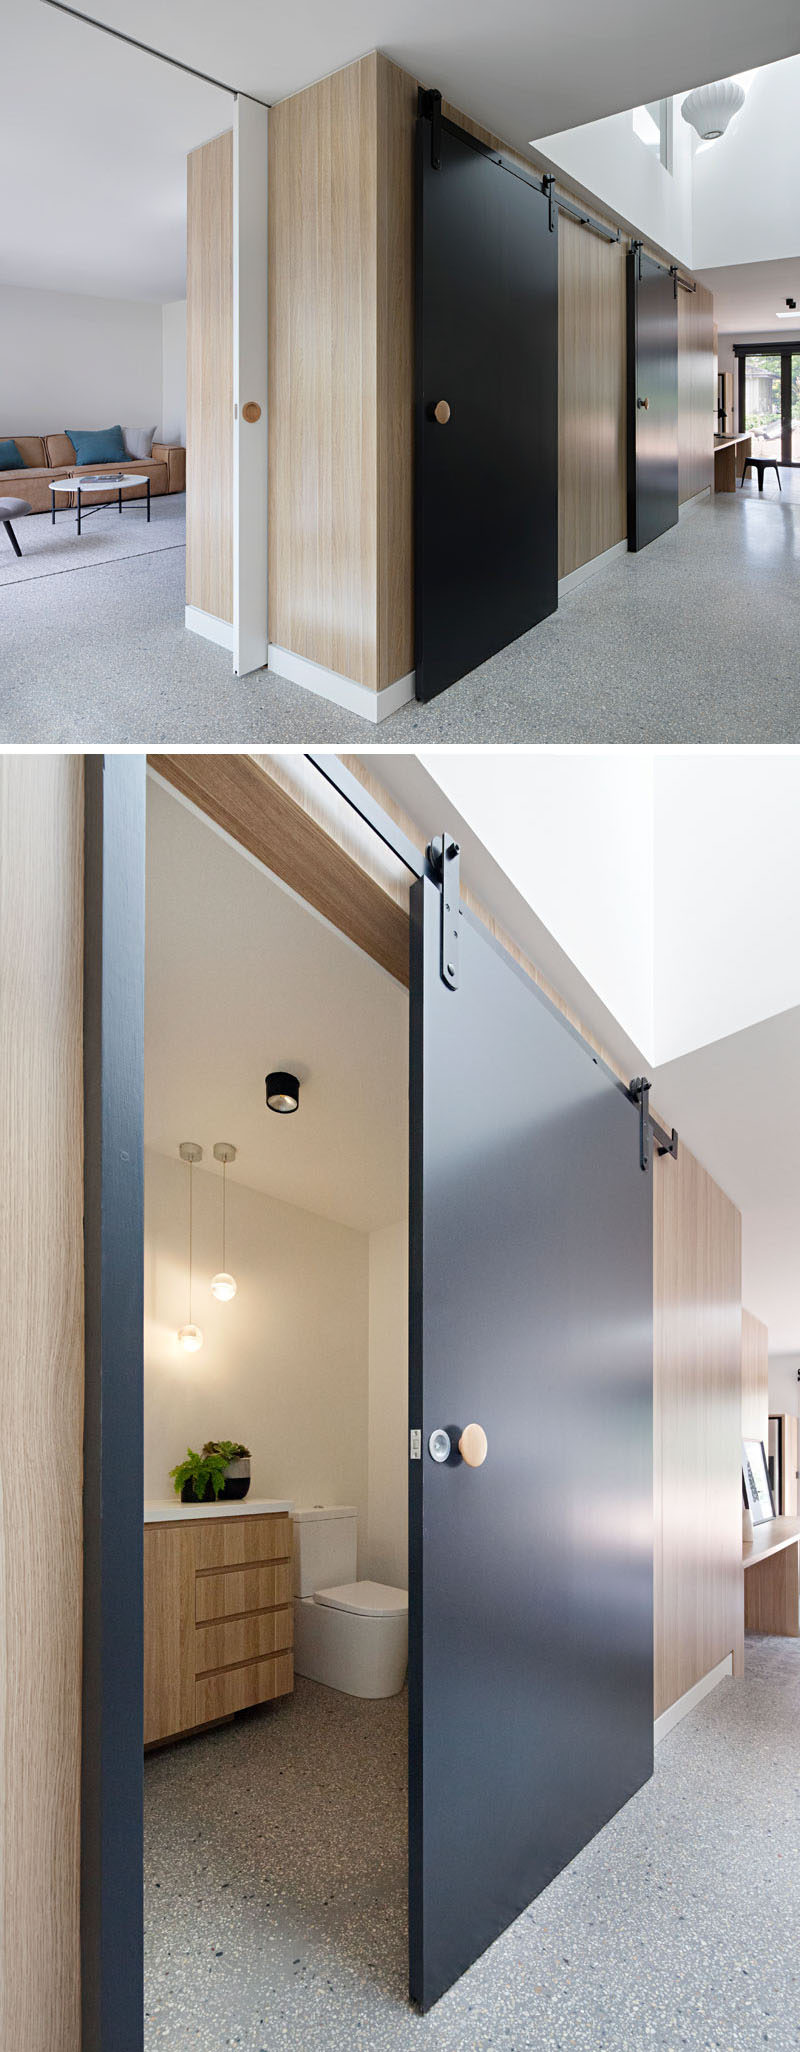 In the main floor of this modern renovated house, a central timber-clad pod has matte black sliding barn doors that conceals various rooms, like a small bathroom and cloak room.